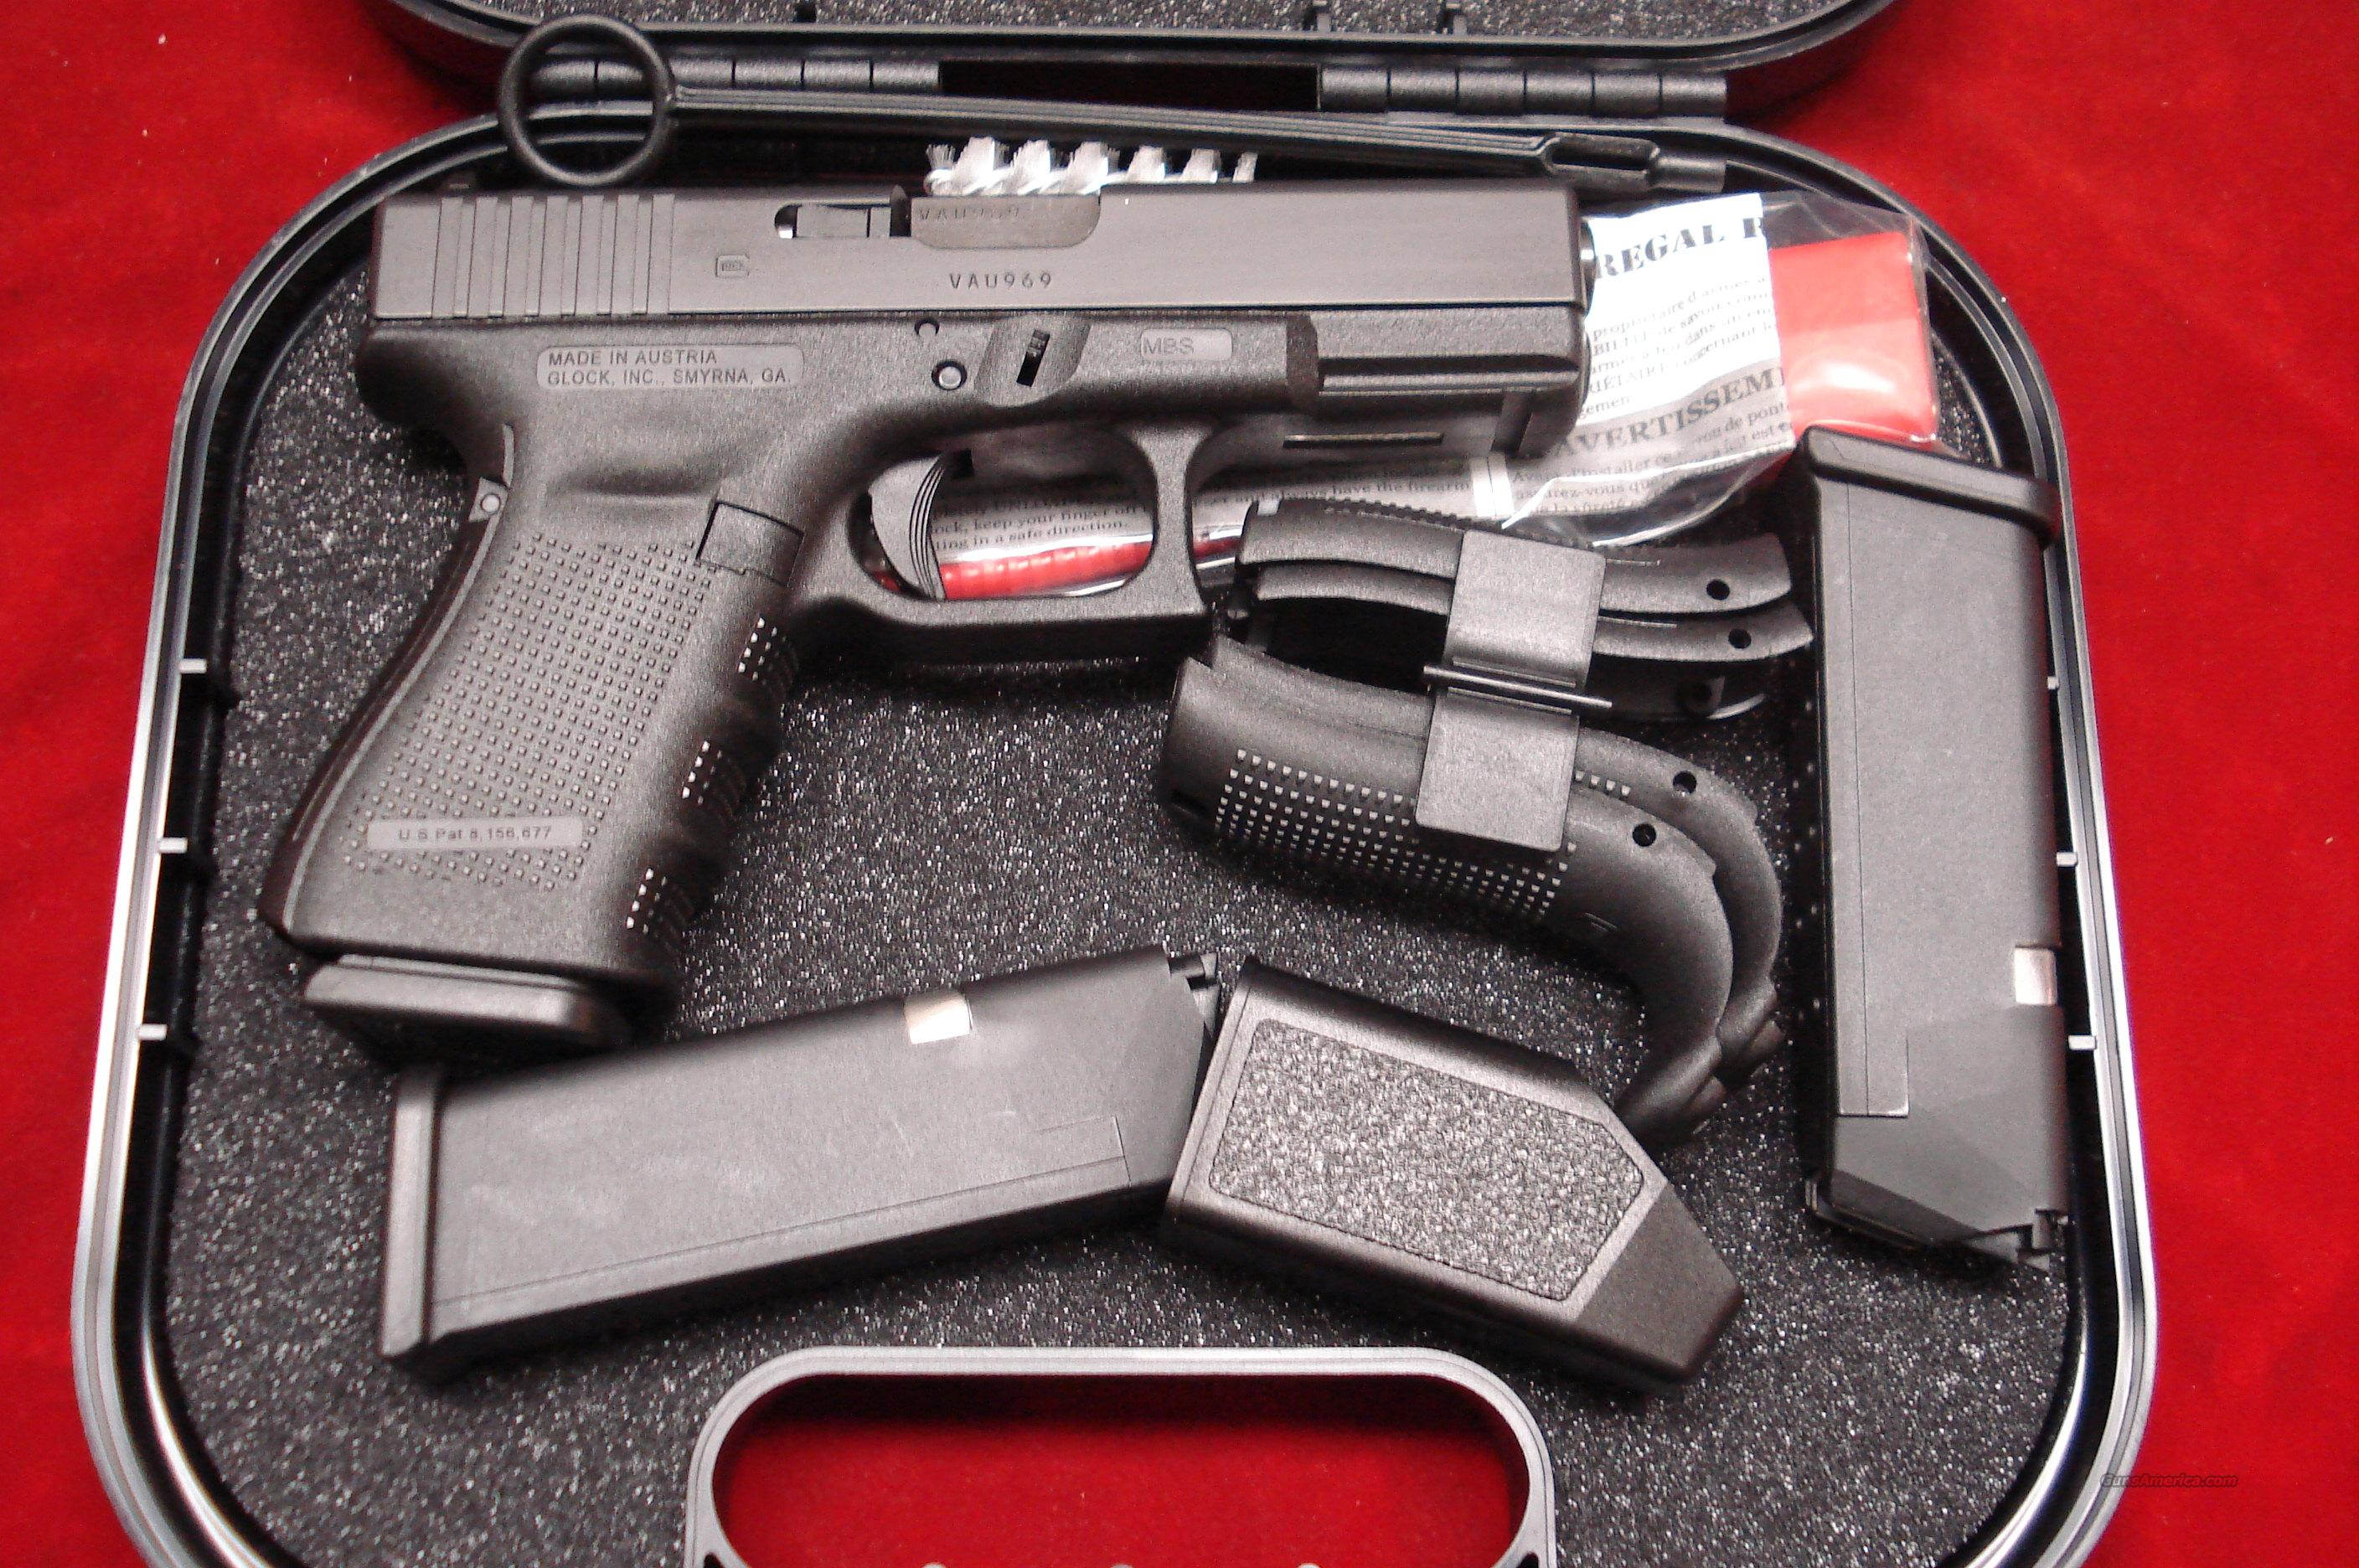 GLOCK NEW MODEL 19 GENERATION 4 .9MM CAL. WITH 3 HIGH CAPACITY MAGAZINES NEW  Guns > Pistols > Glock Pistols > 19